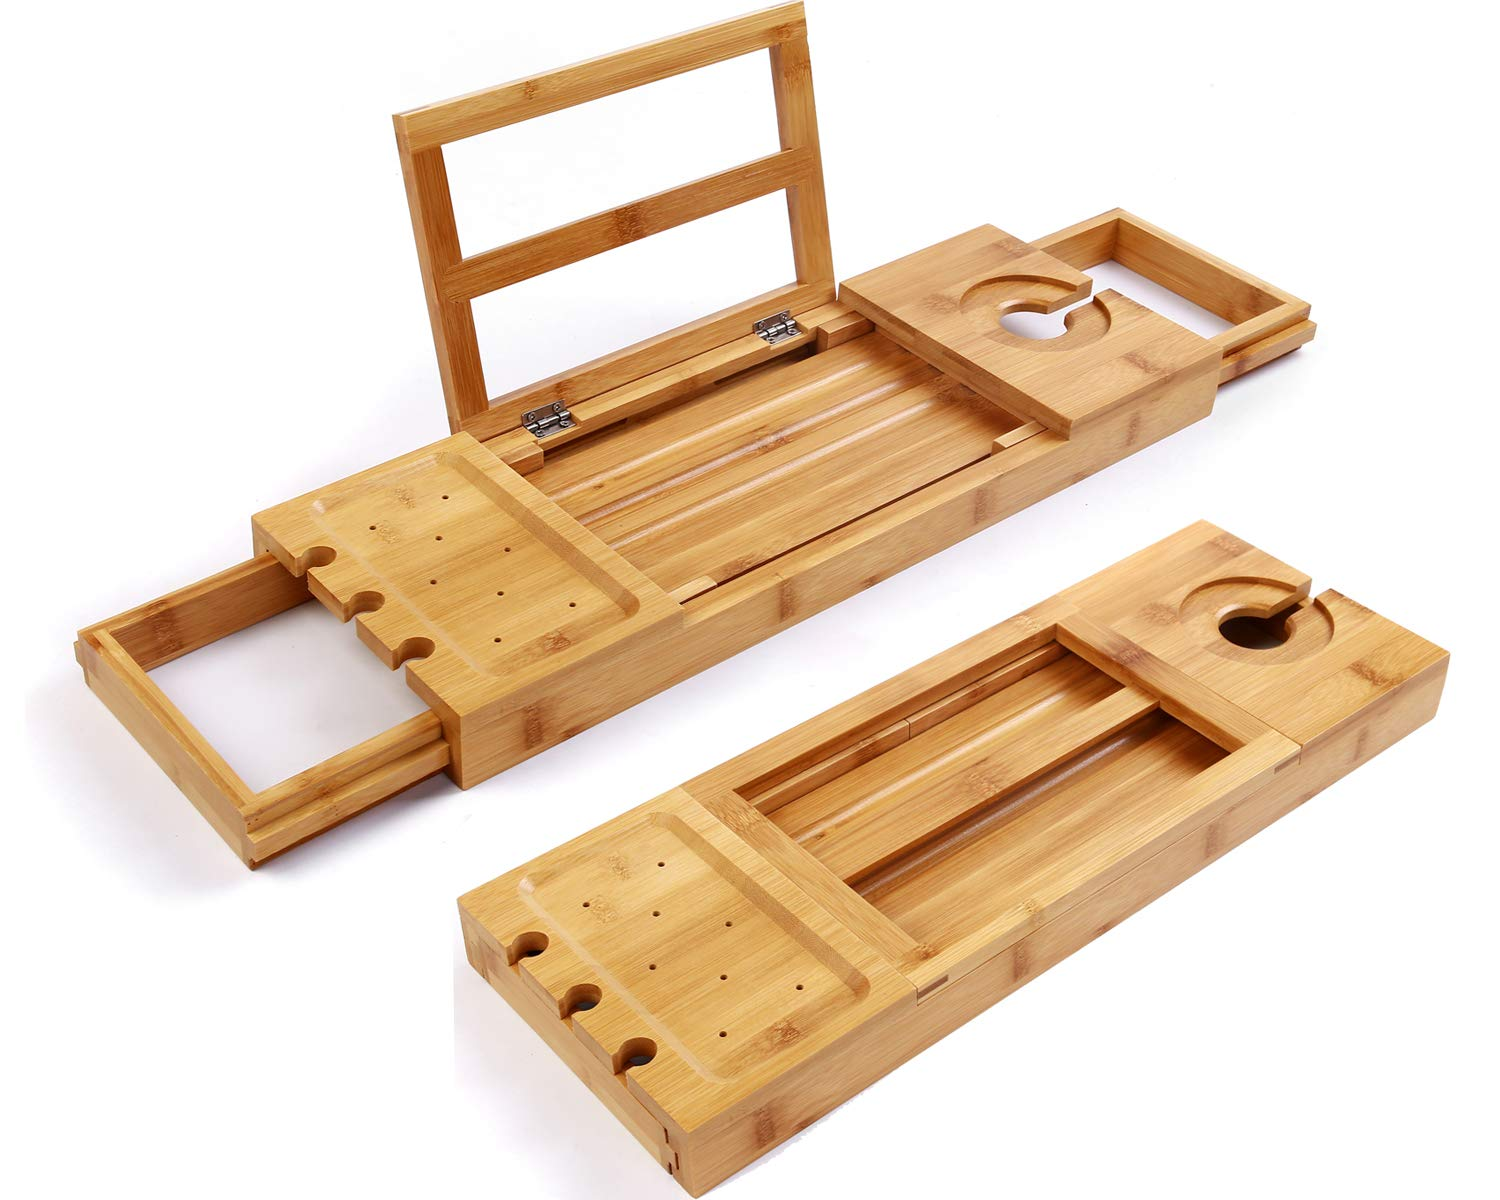 Utoplike Unique Bamboo Bathtub Tray Wooden Bath Caddy Tray Extending Arms,Spa Relaxing Bath Organizer Tray Holds Books/Tablets/ Cell Phone/Towels/Foods SafeHouseware